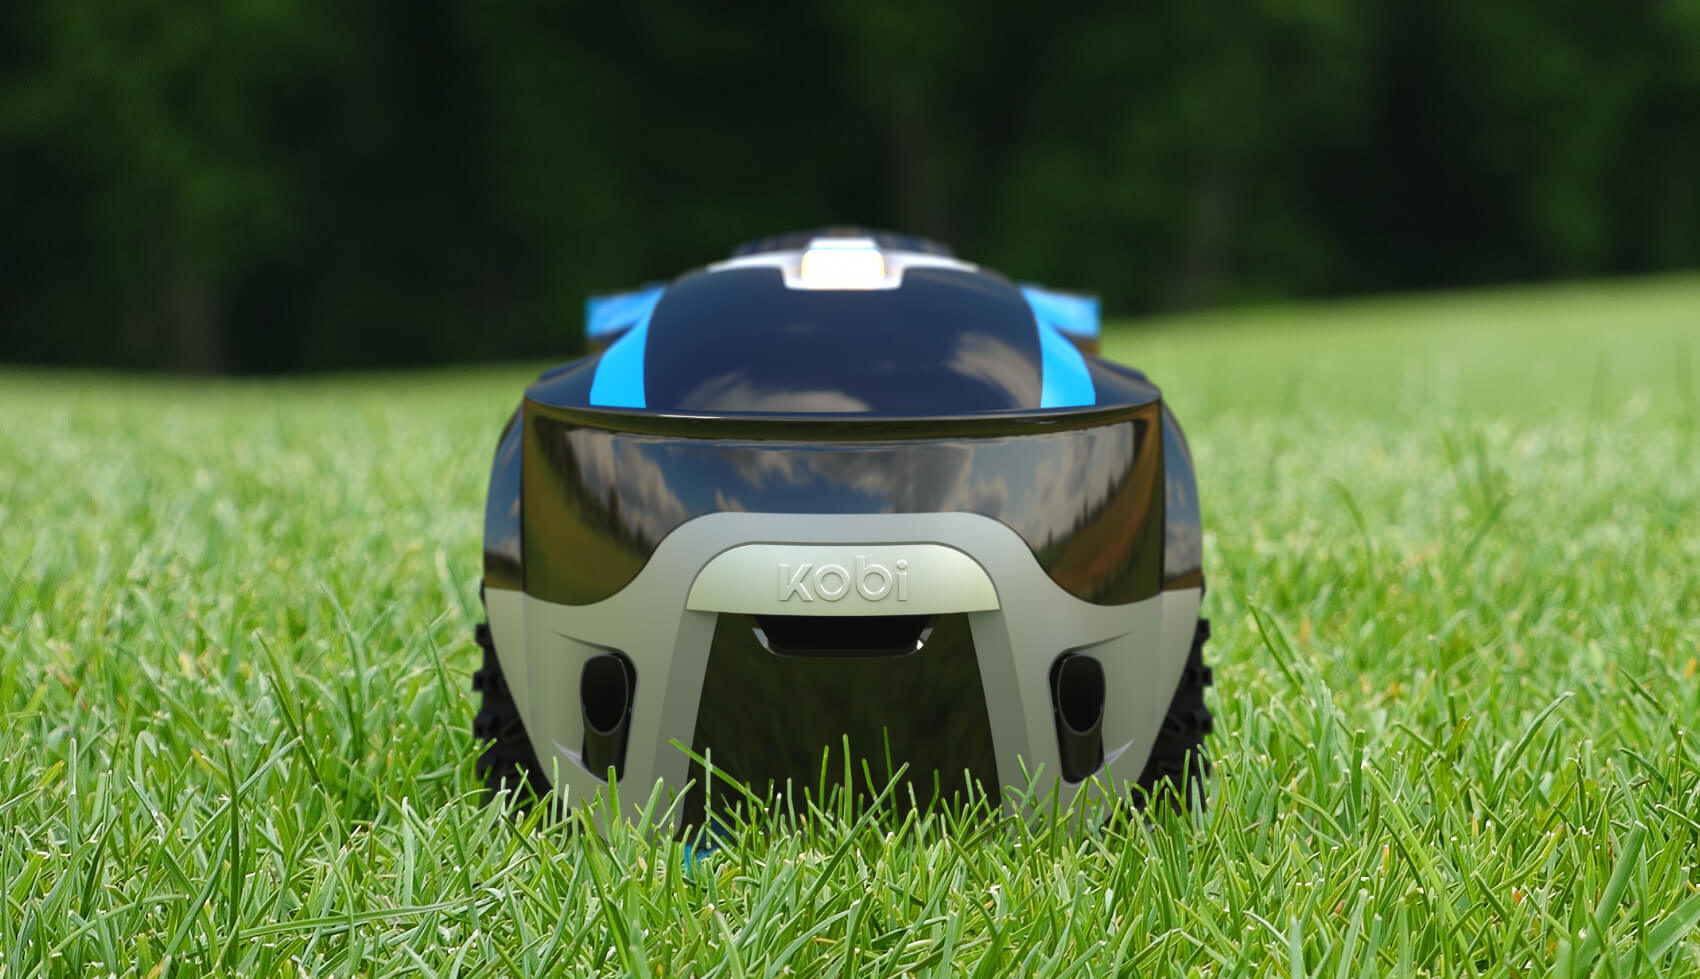 The Kobi Company - Launching a multifunctional garden robot. In the U.S. of A!